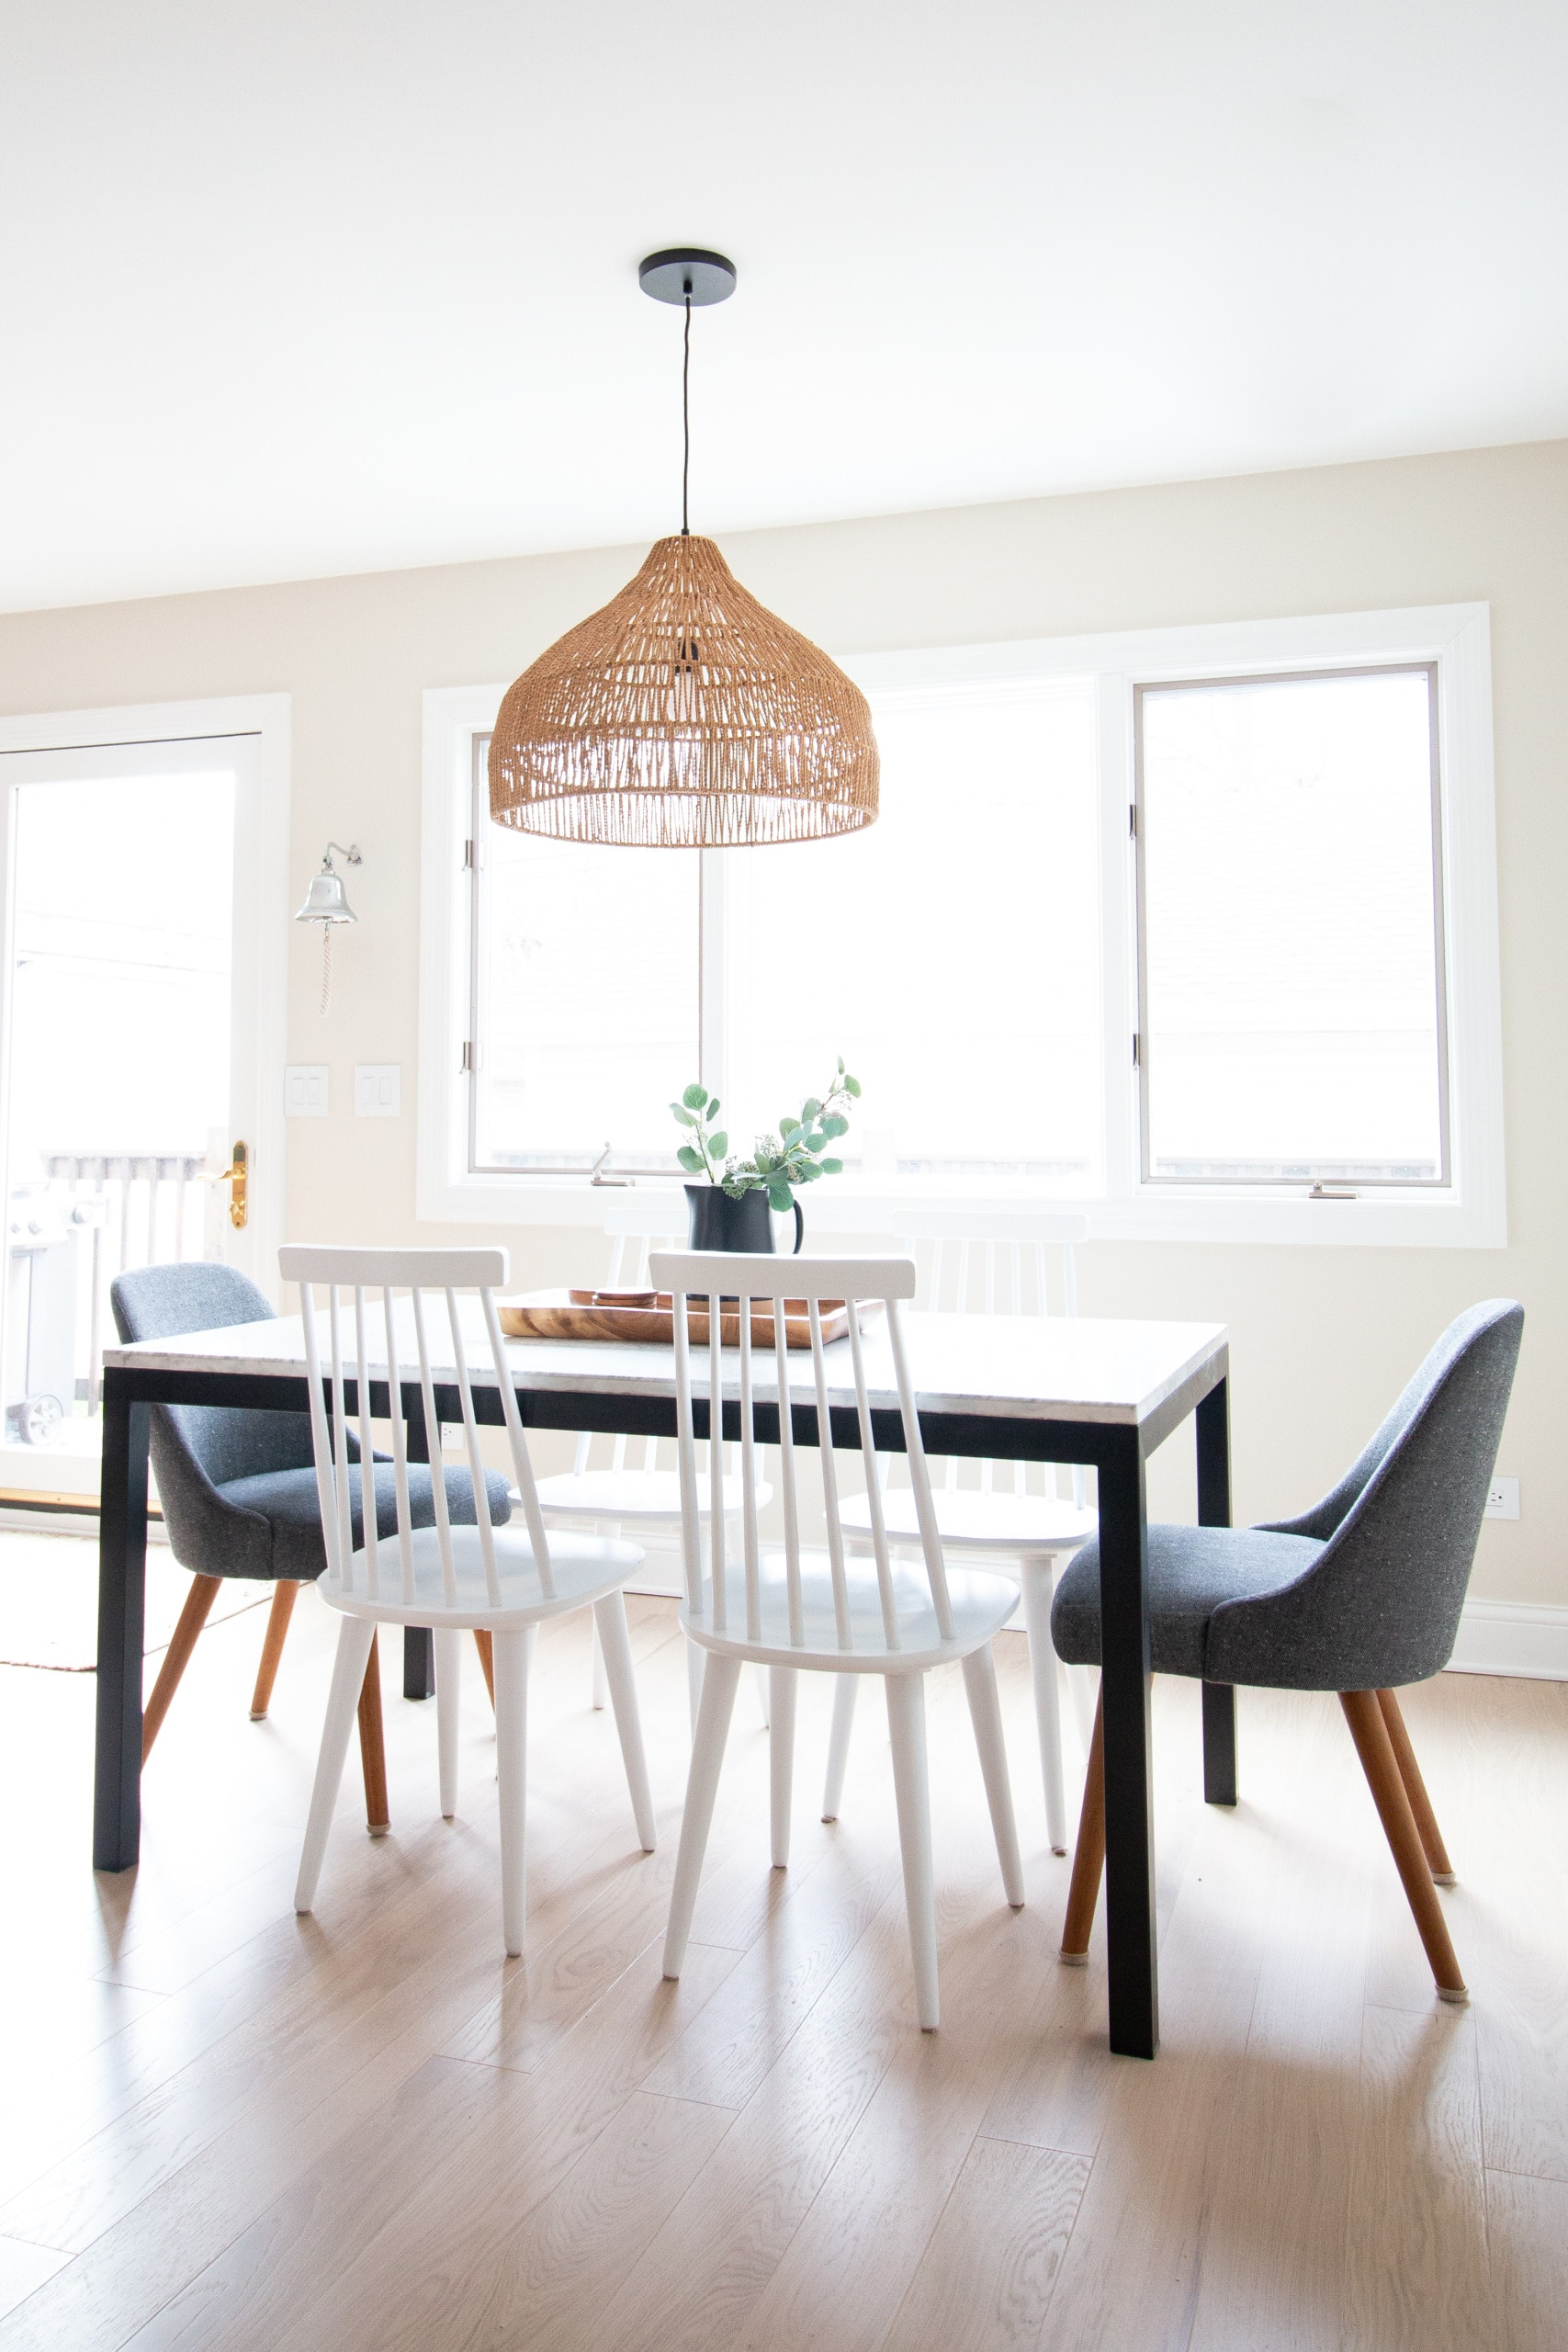 Dining room with woven light fixture